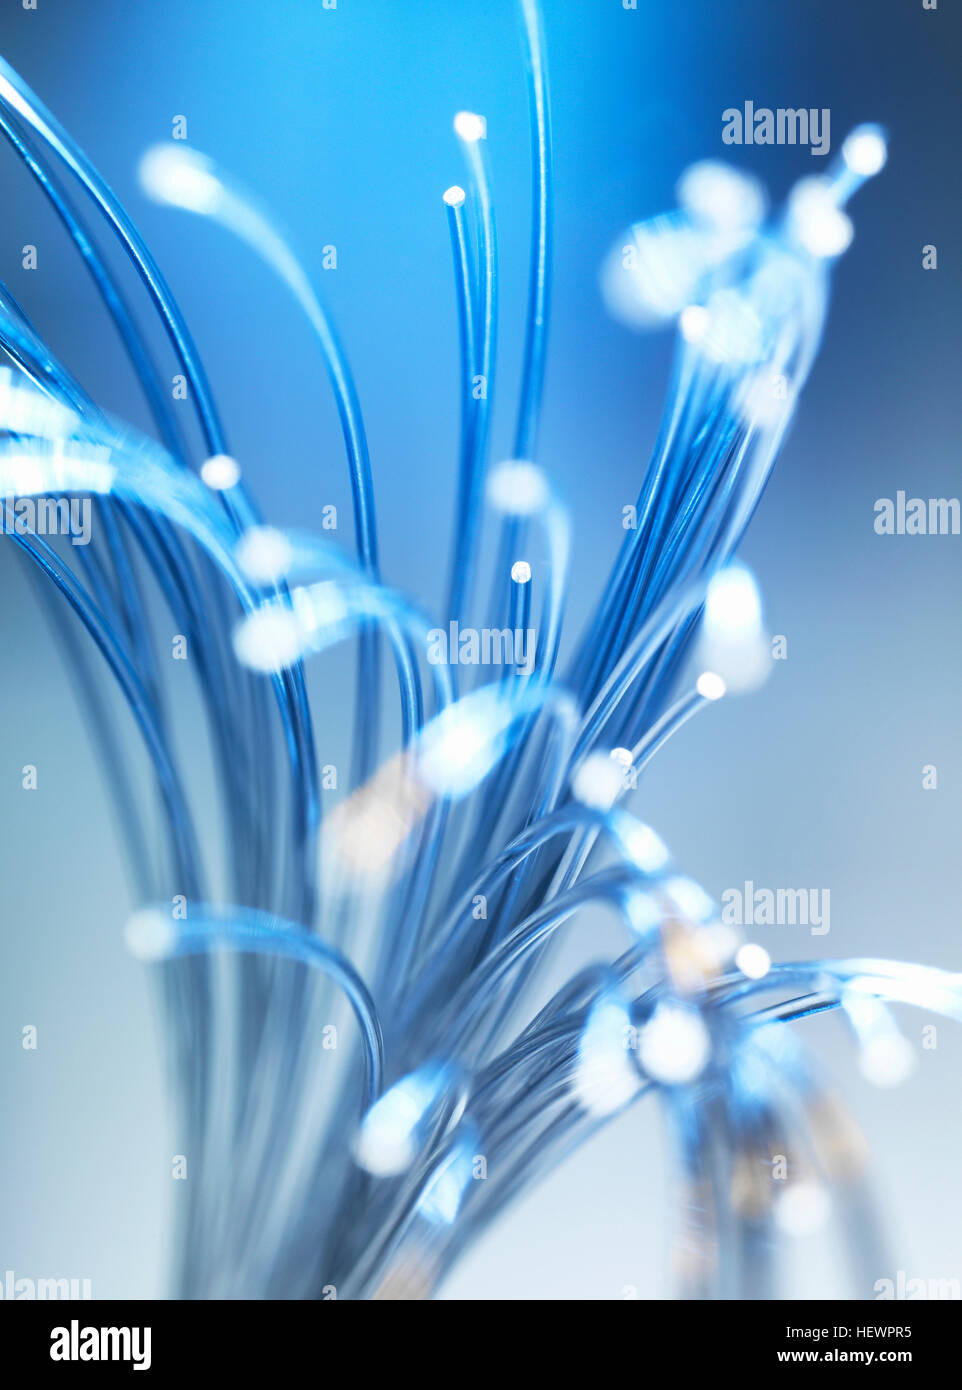 Bundle of fibre optic cables - Stock Image